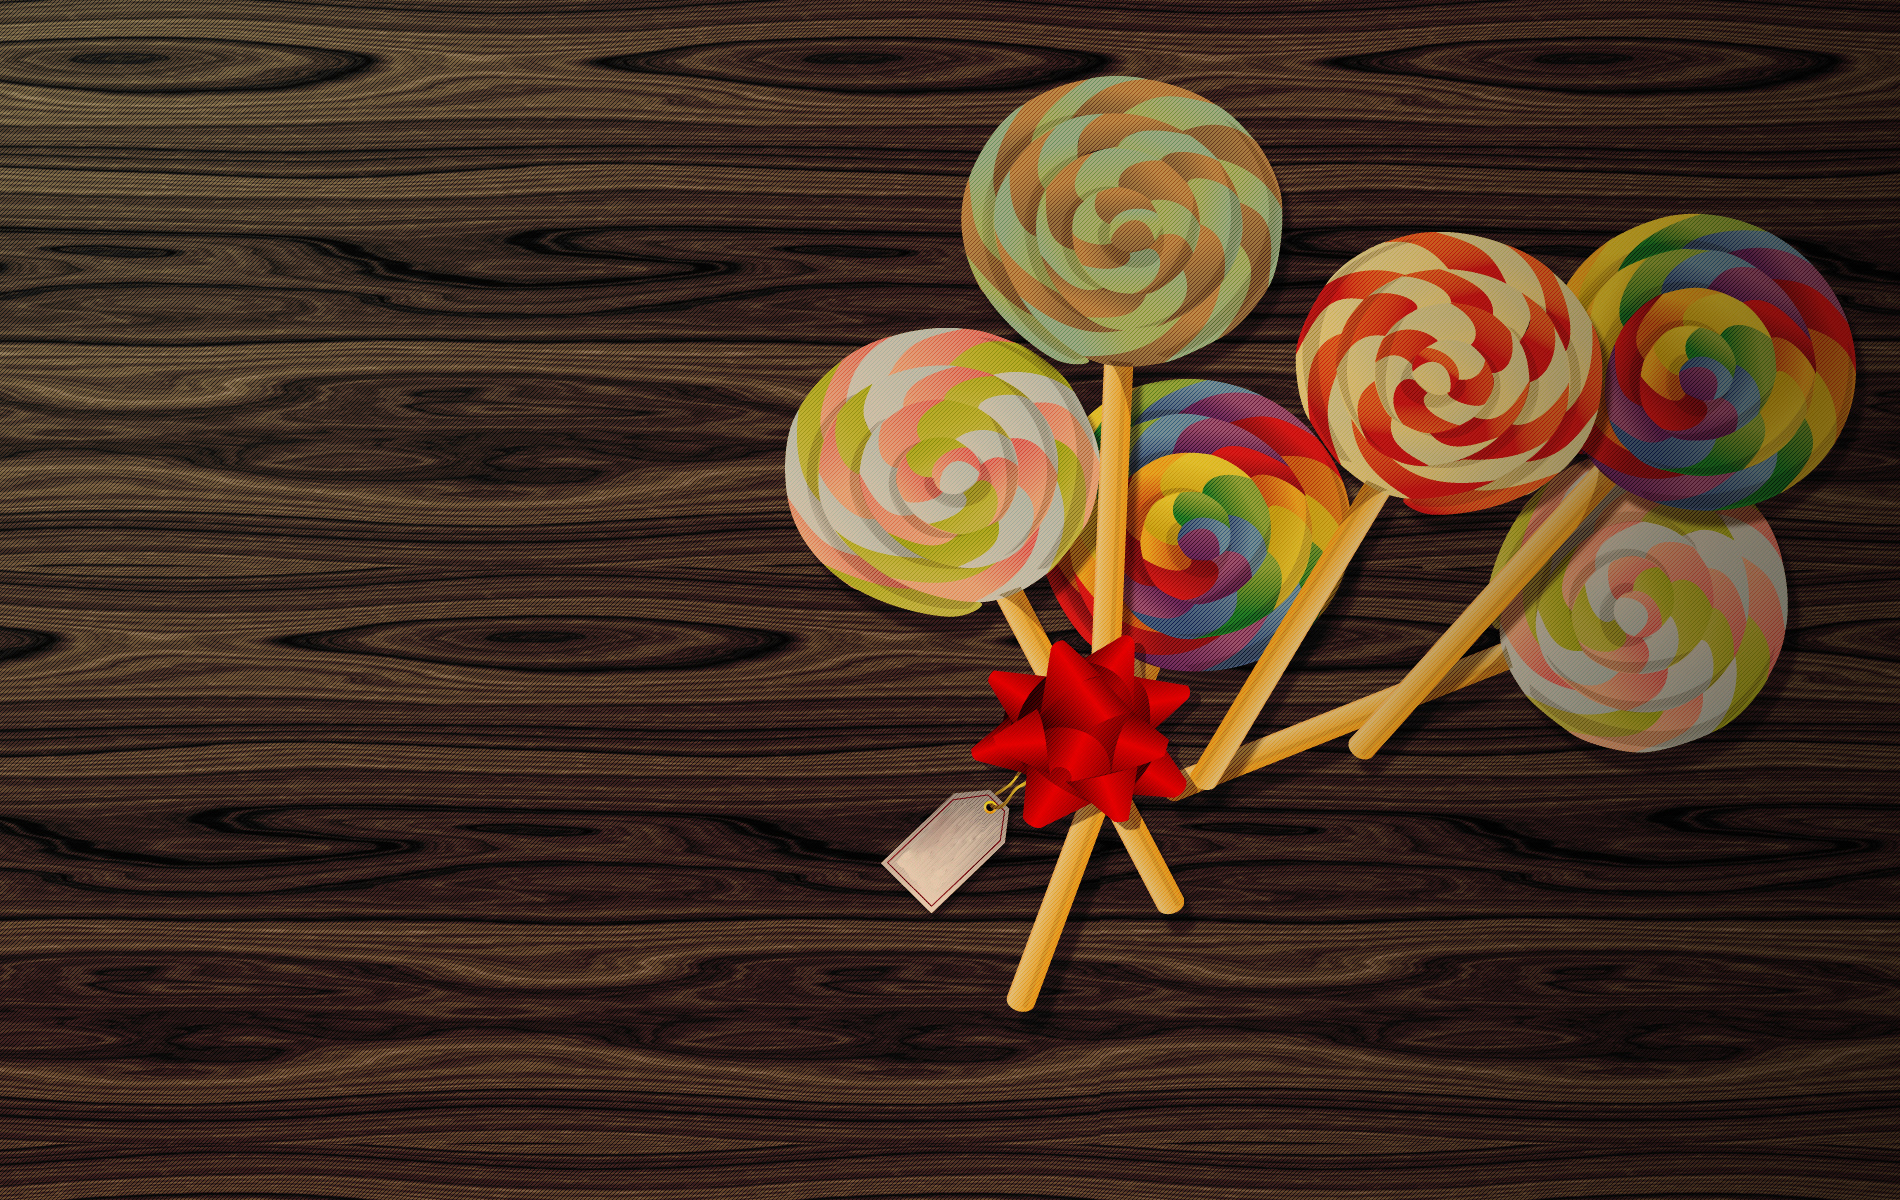 Manly Fall Wallpaper Candy Lollipop Wallpapers Pixelstalk Net